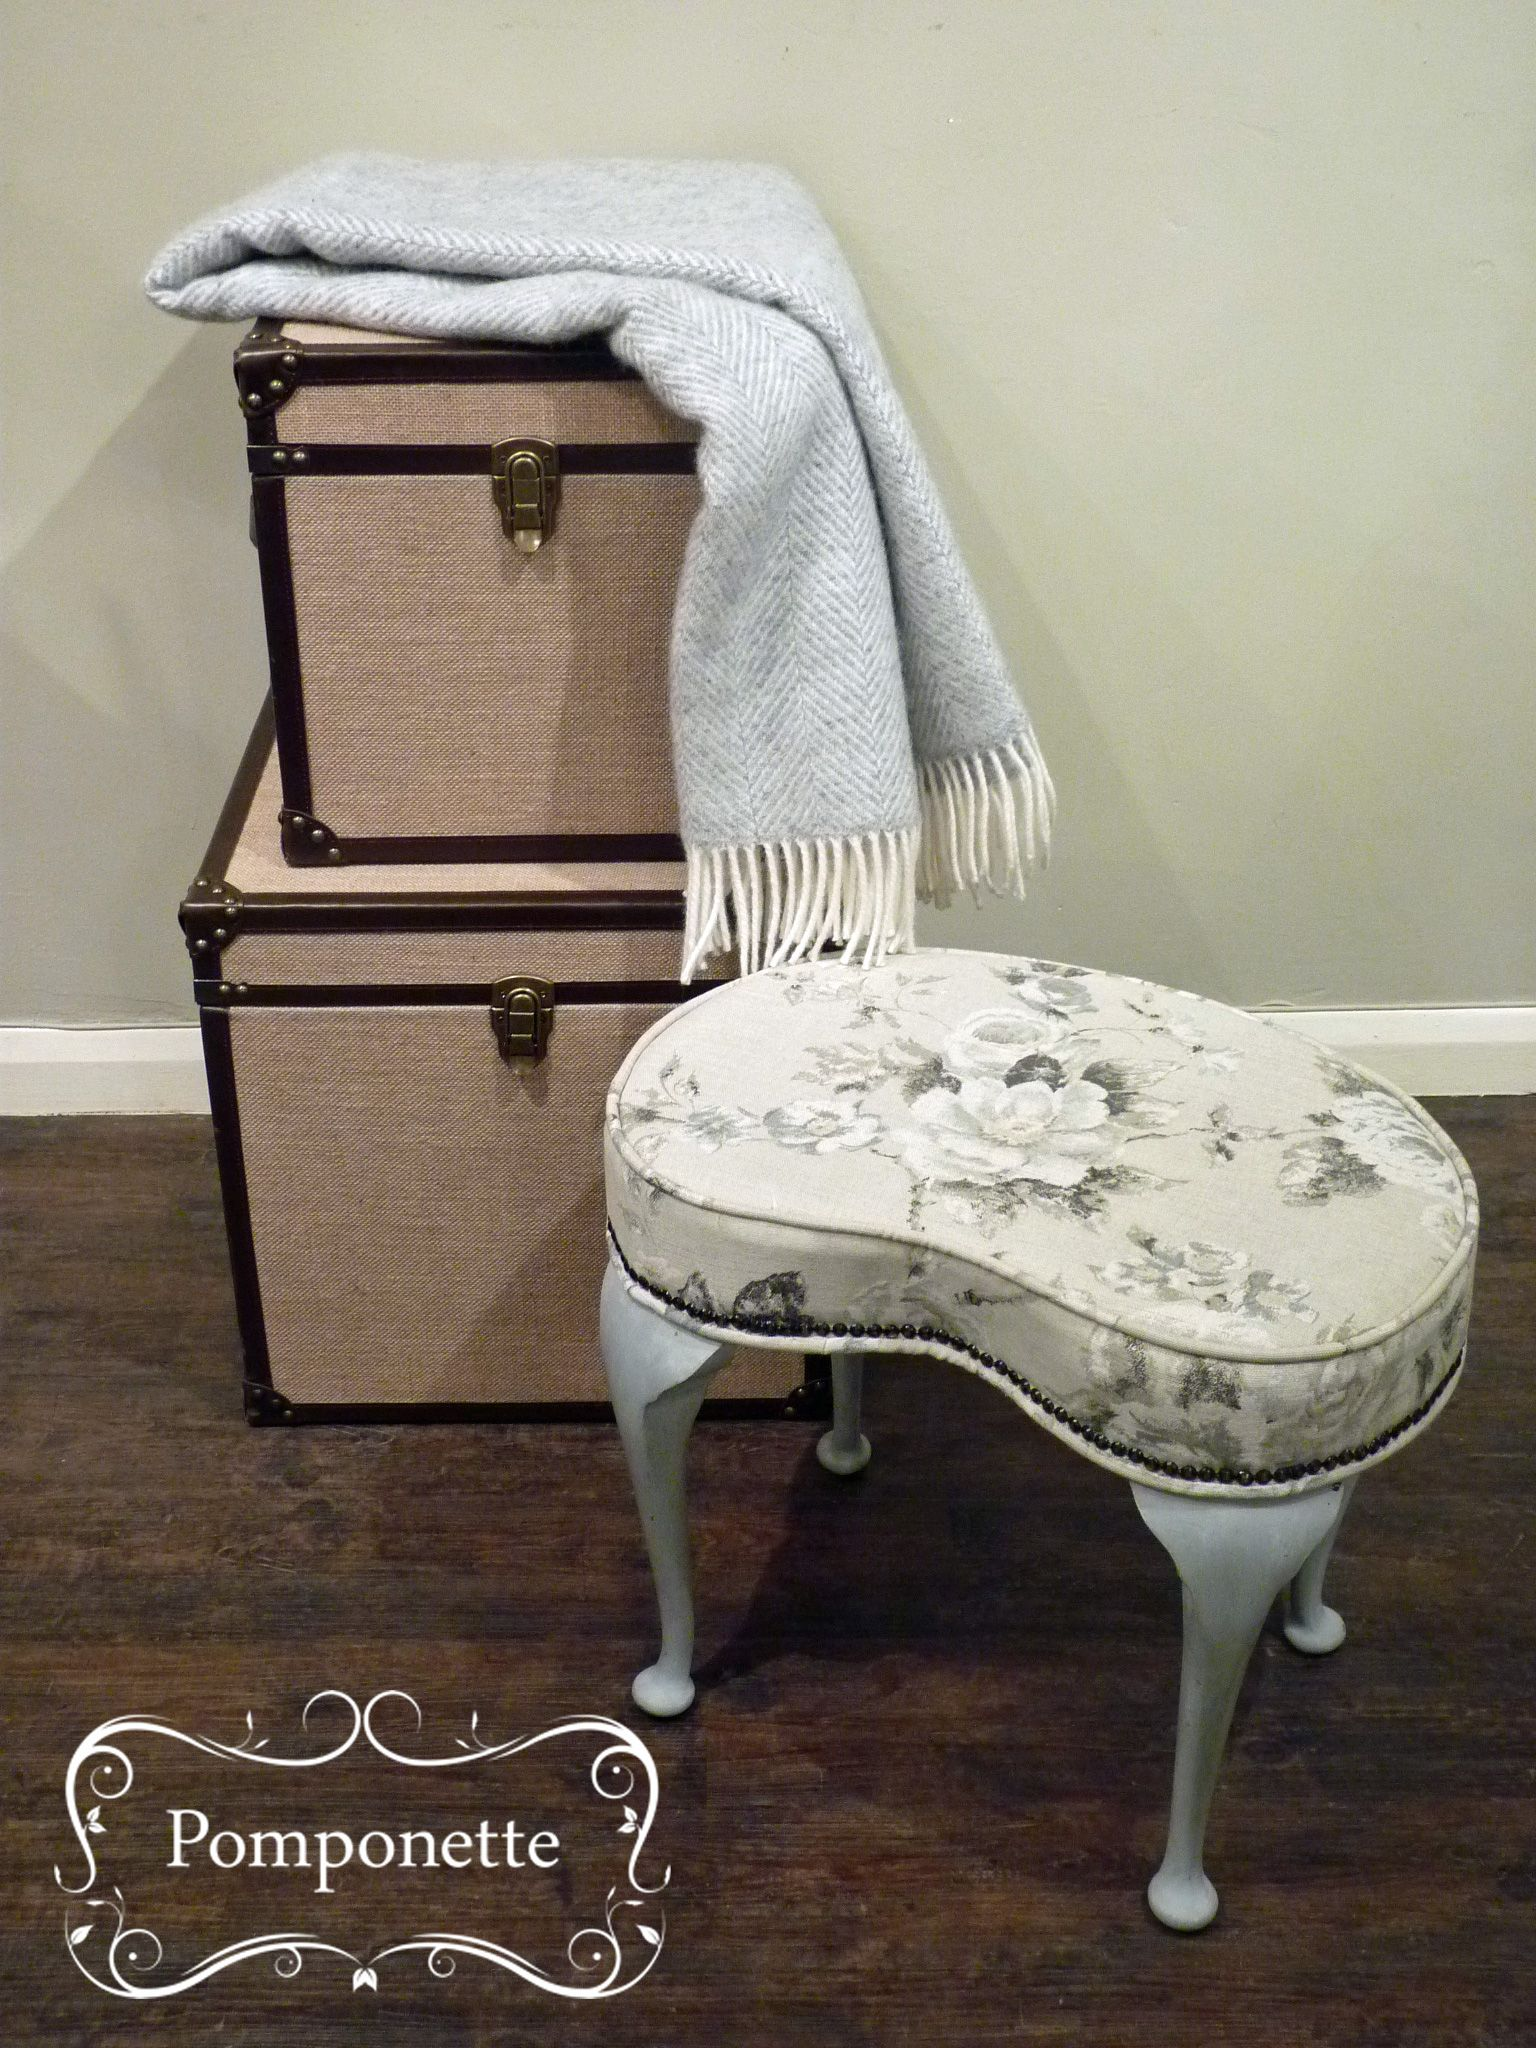 Low Kidney Bedroom Stool with @anniesloanhome #chalkpaint & Emmeline fabric   by pomponette   Leicester